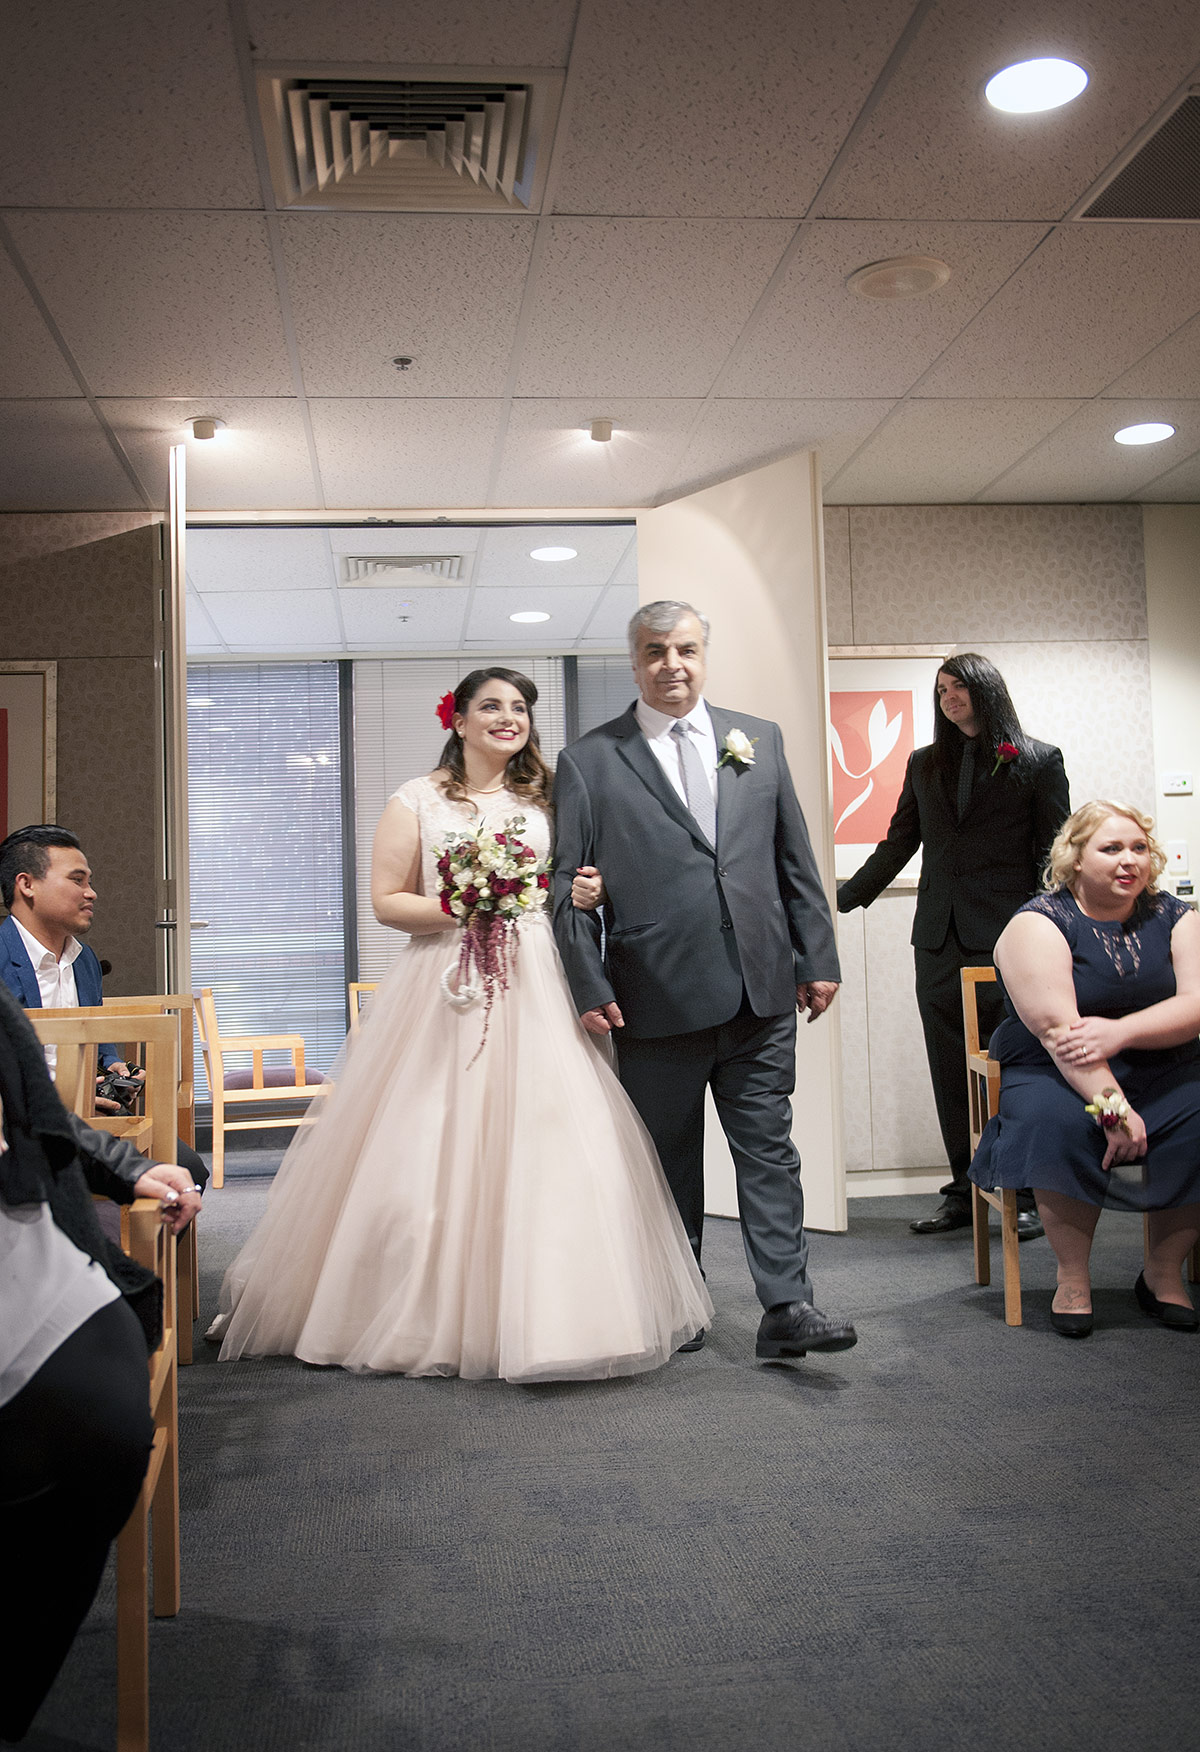 Marriages registration office wedding